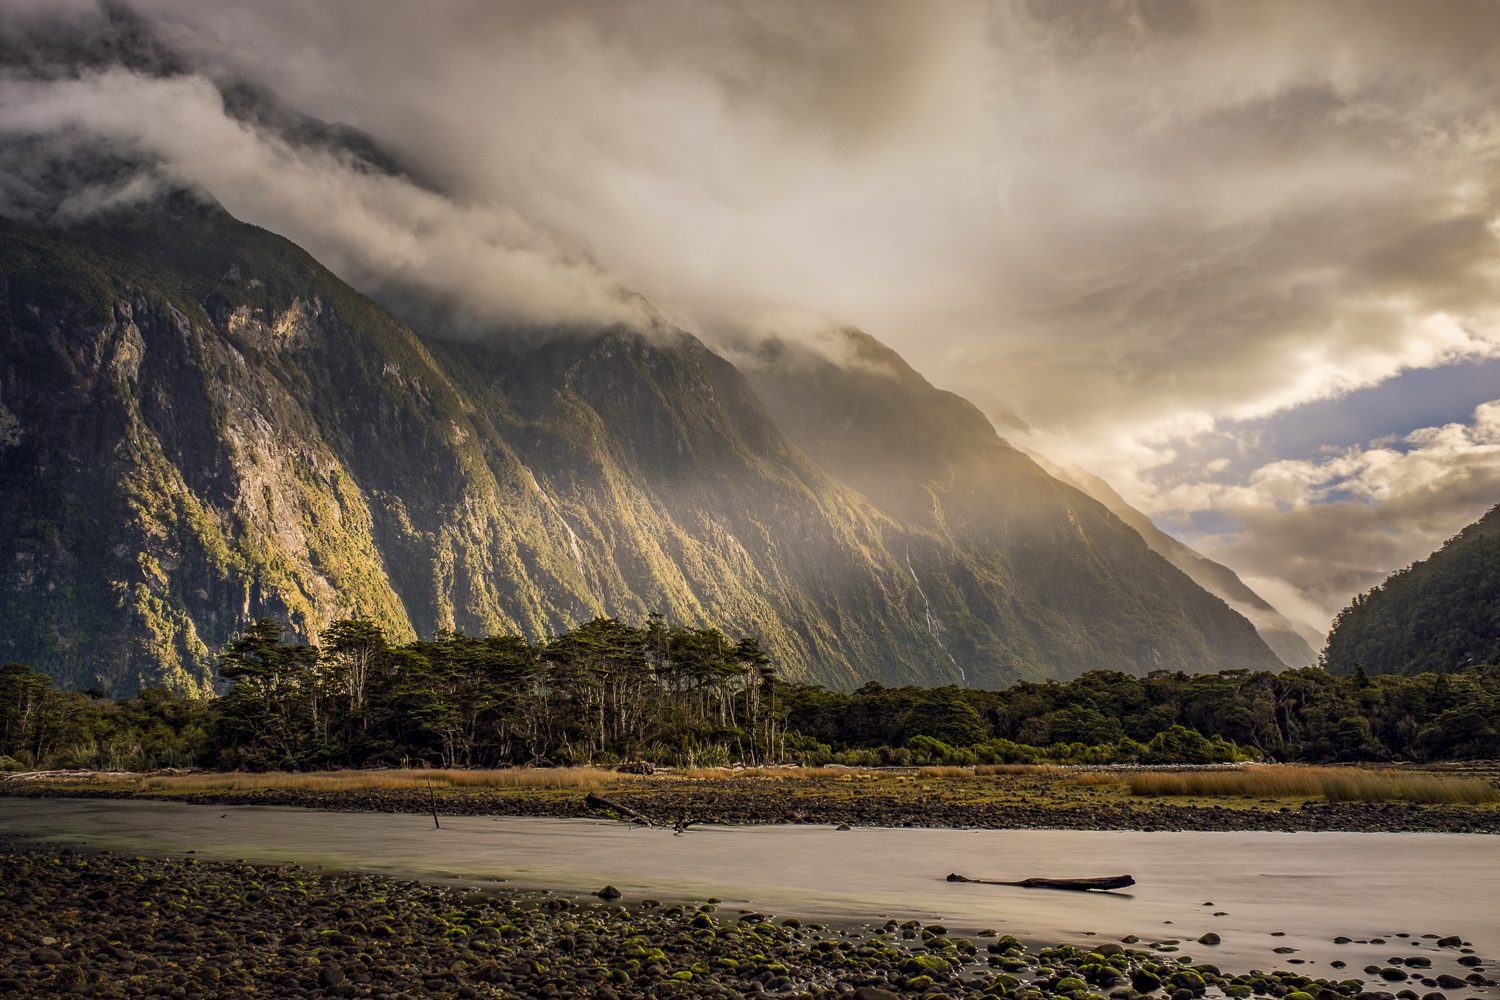 Landscape; Sun rail shines through storm clouds and hits Mountains in Milford Sound, New Zealand